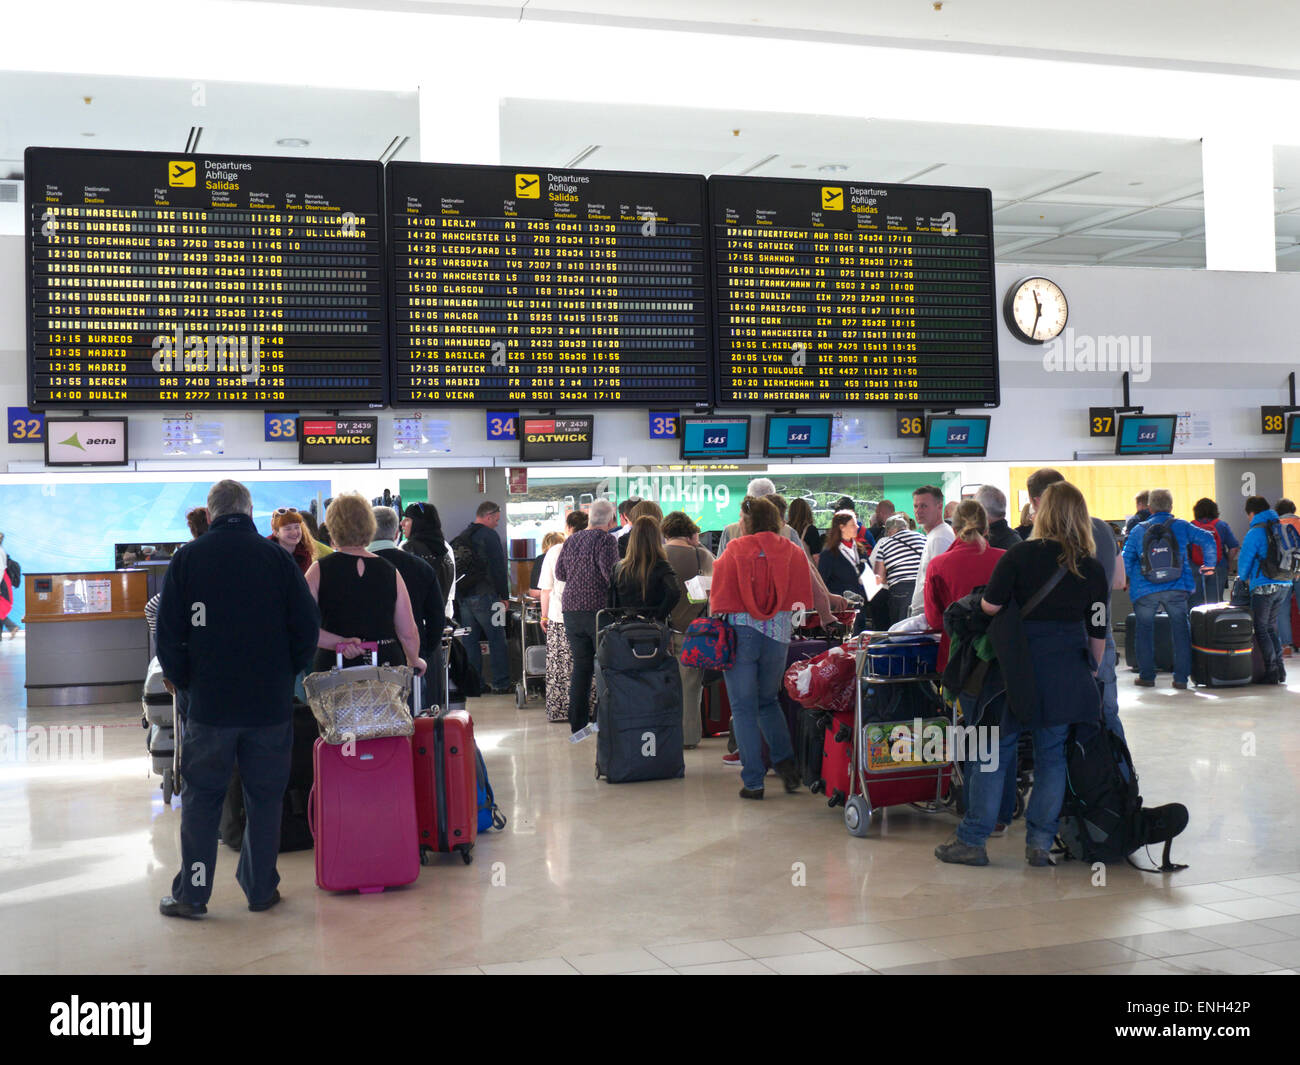 Information screens and queues of airline passengers and luggage wait on airport concourse to check in to their - Stock Image